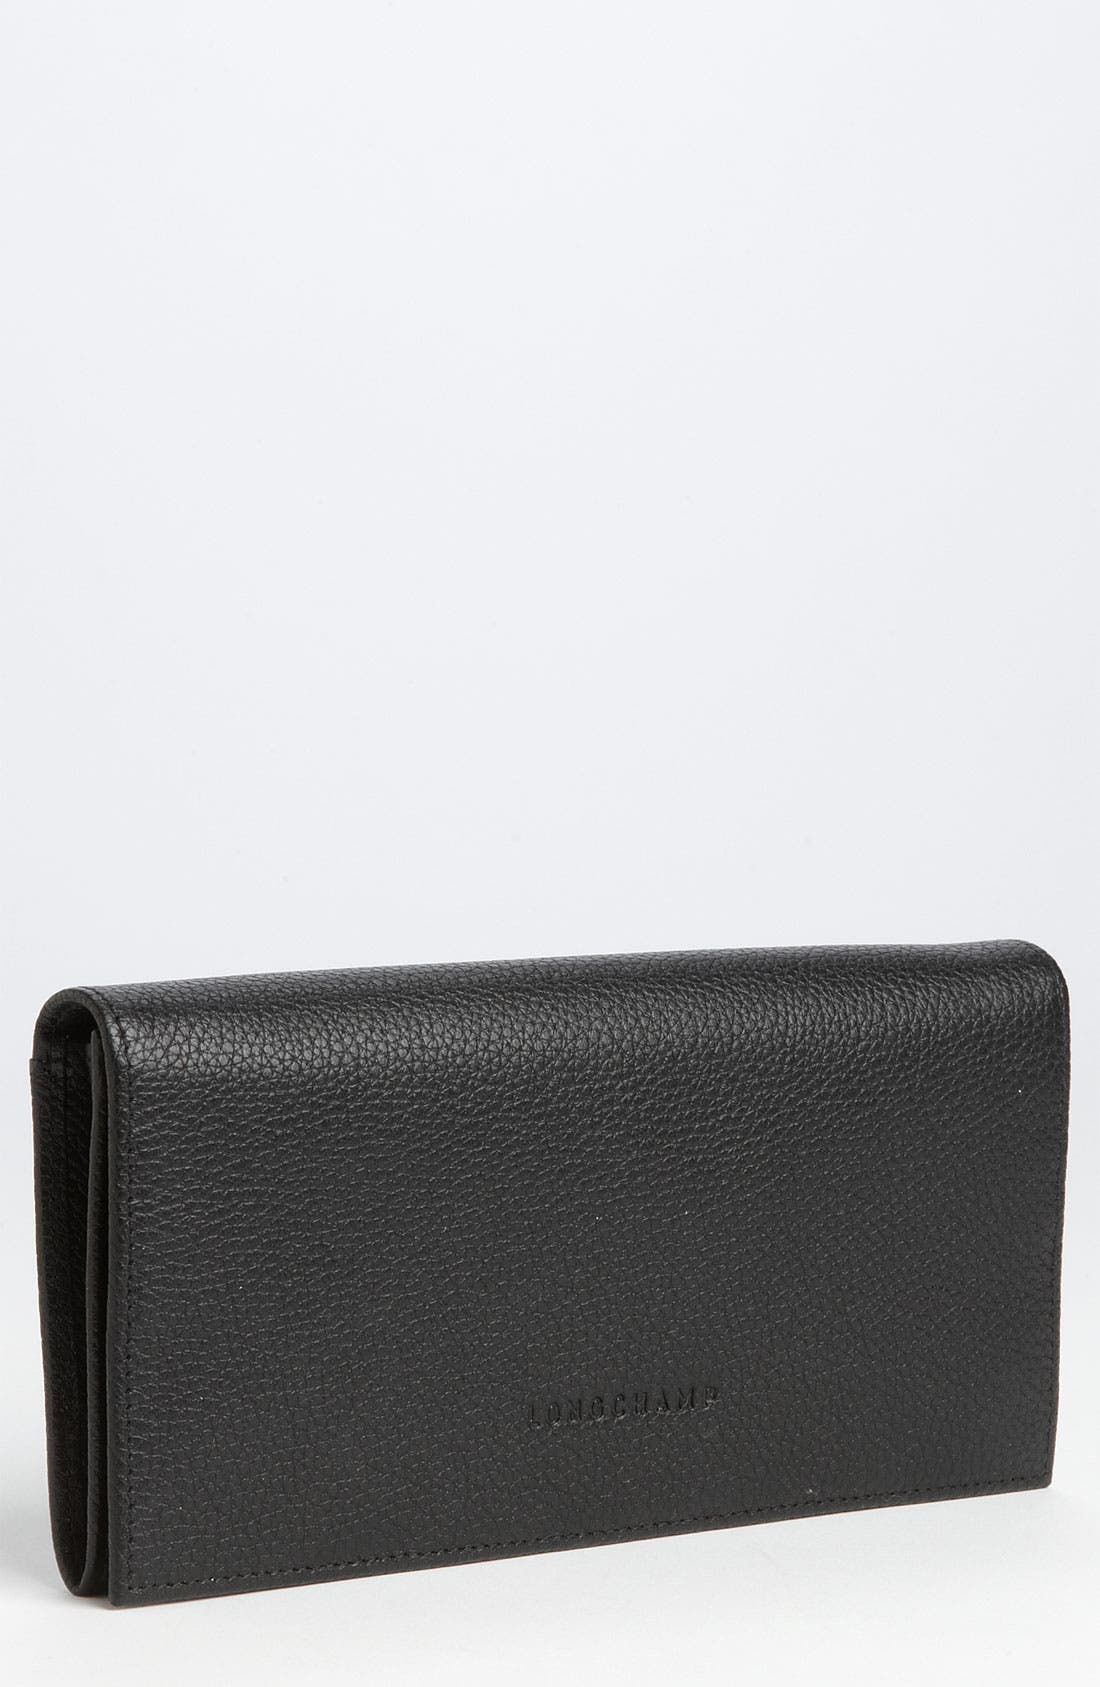 Main Image - Longchamp 'Veau' Wallet